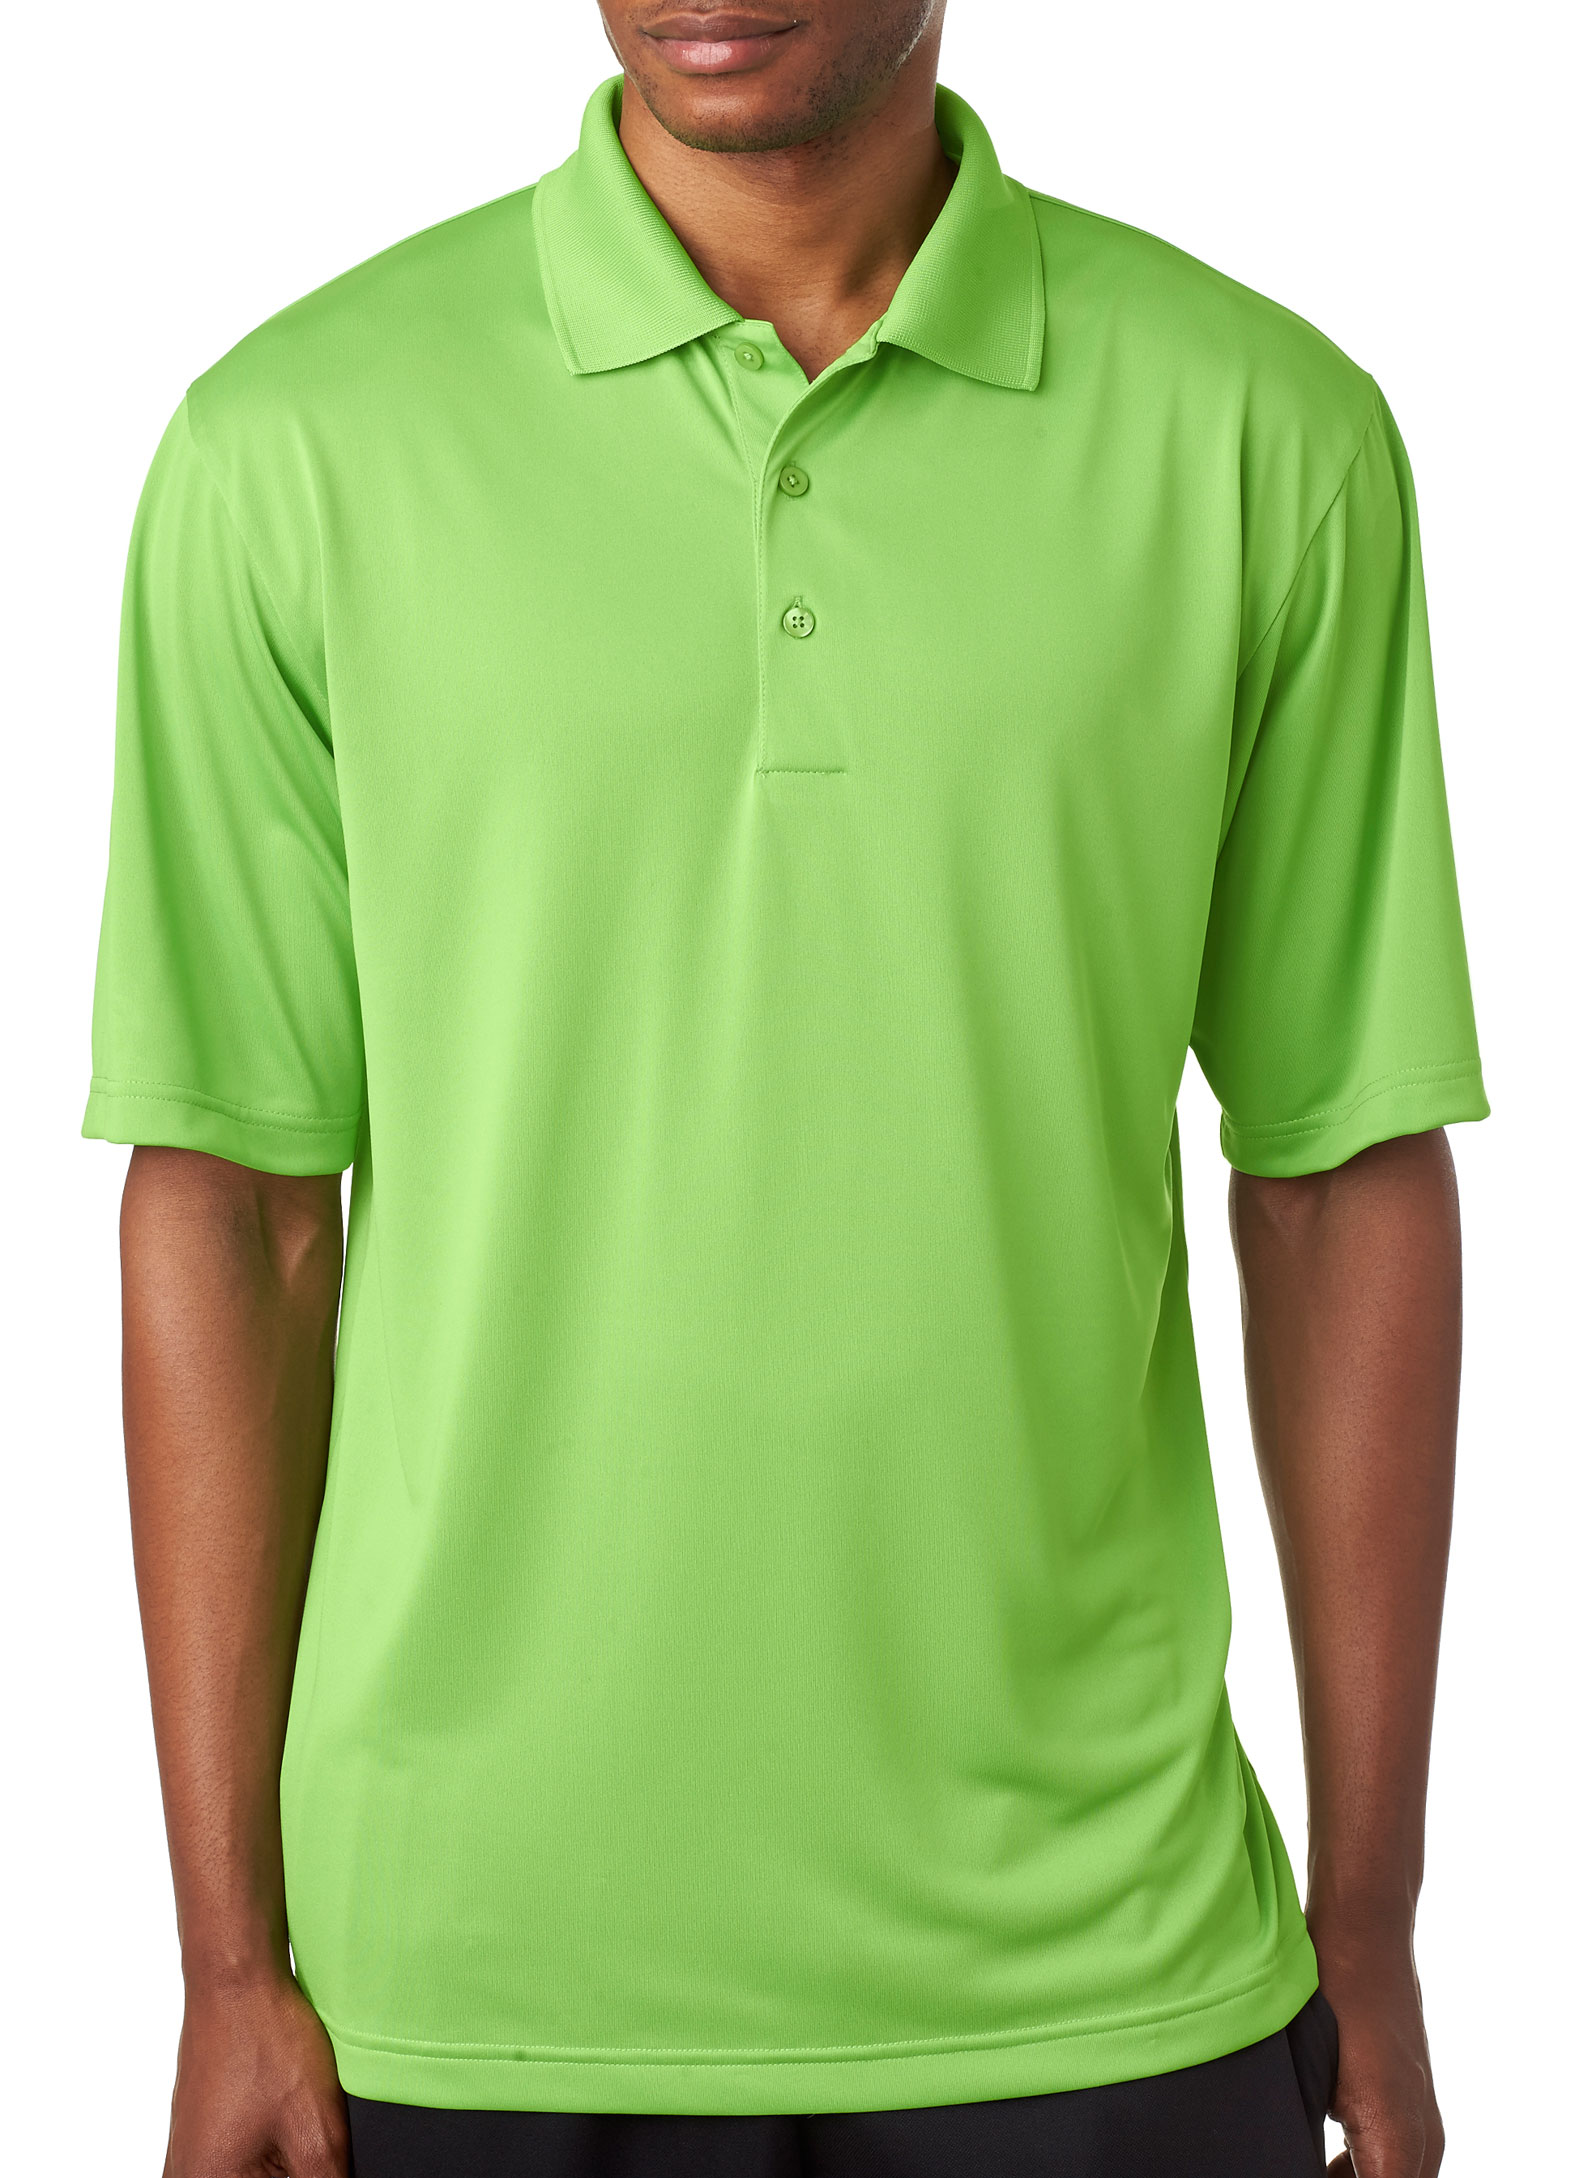 UltaClub Mens Cool & Dry 8 Star Elite Performance Polo